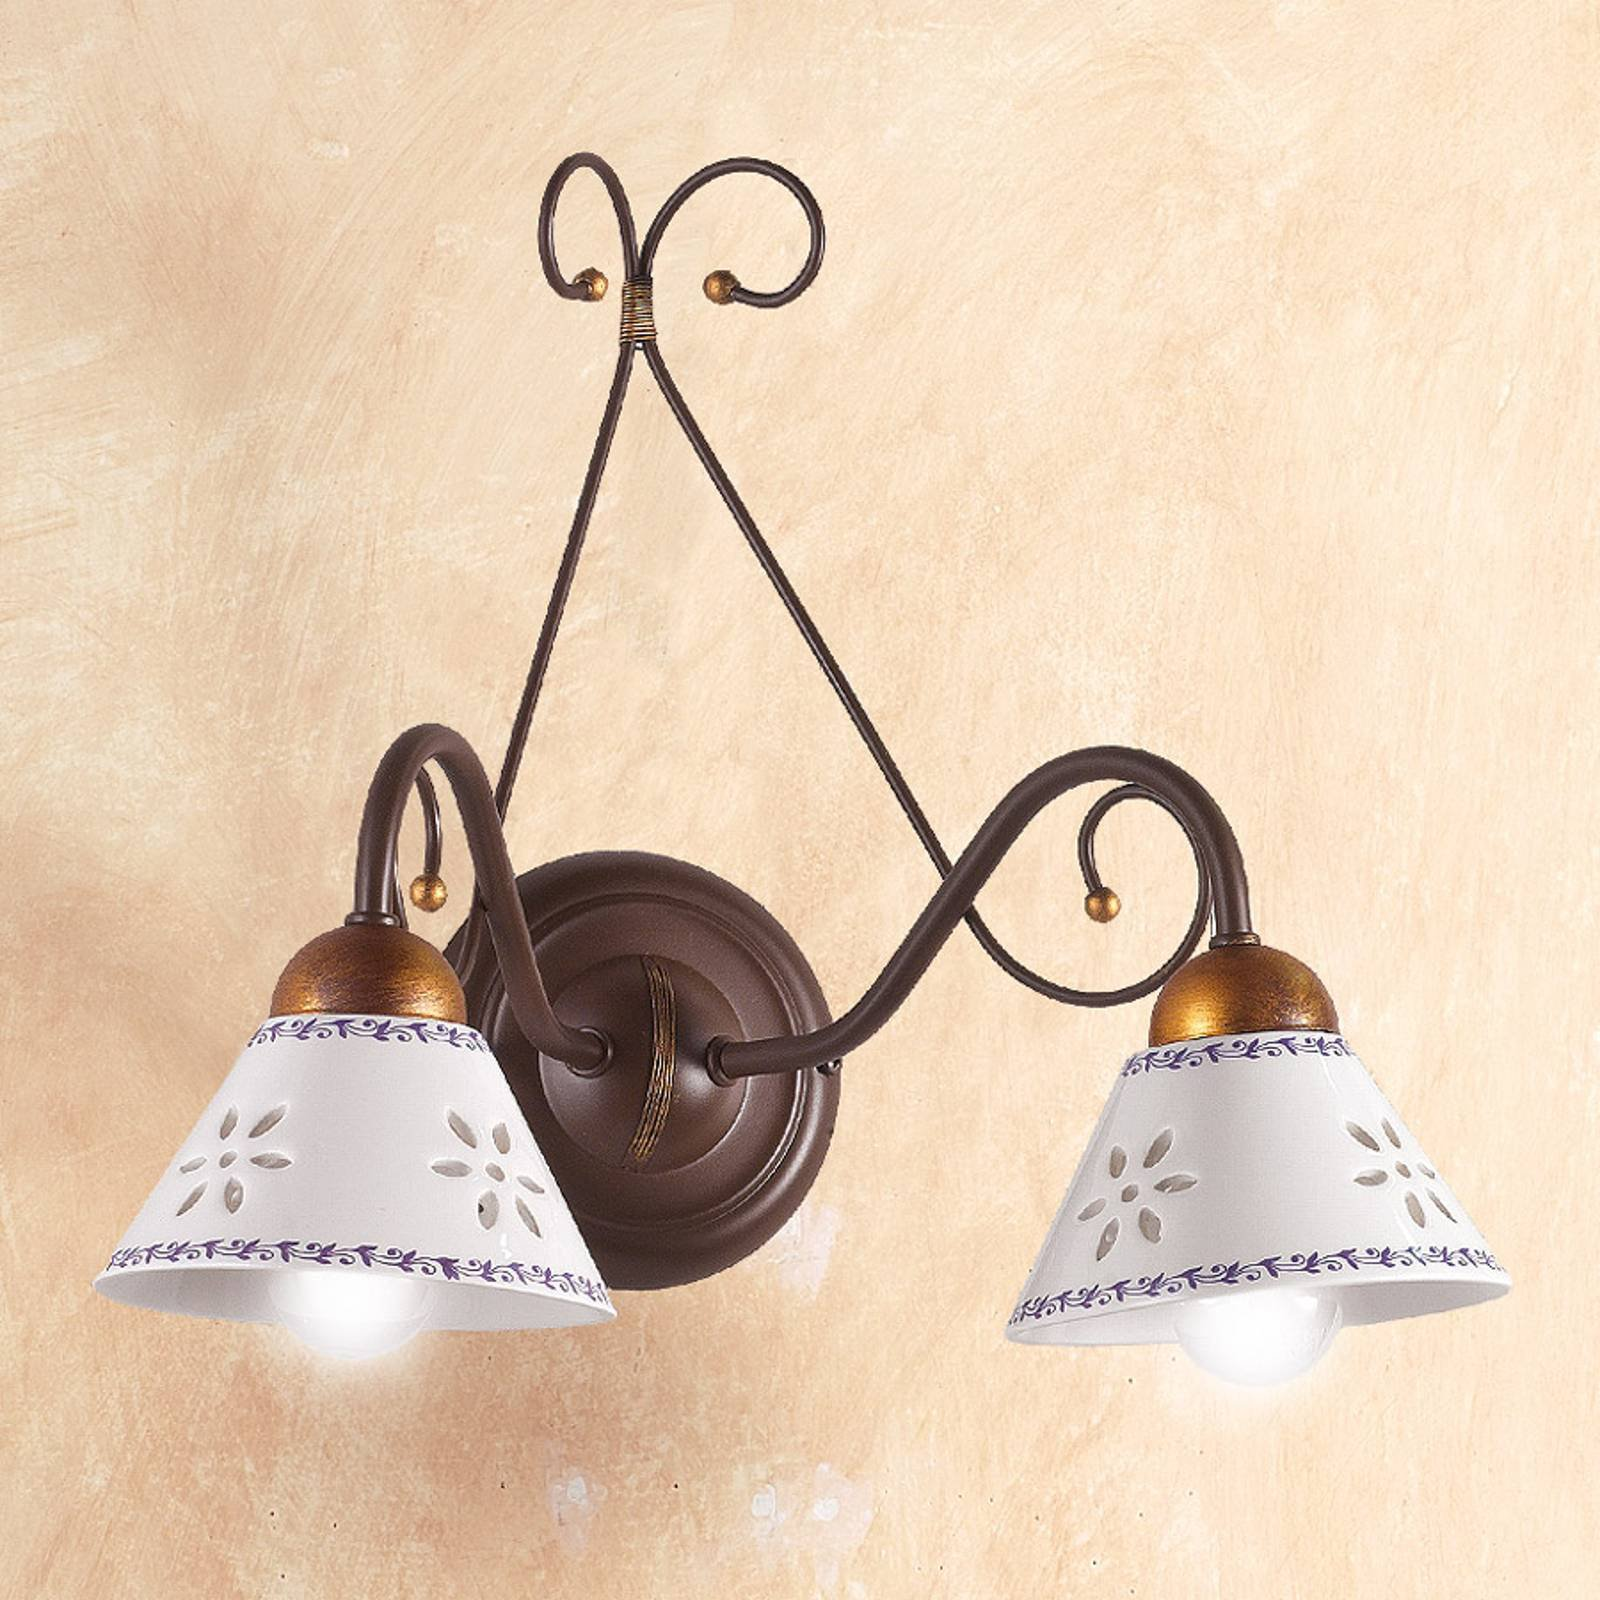 LIBERTY vegglampe med to lys